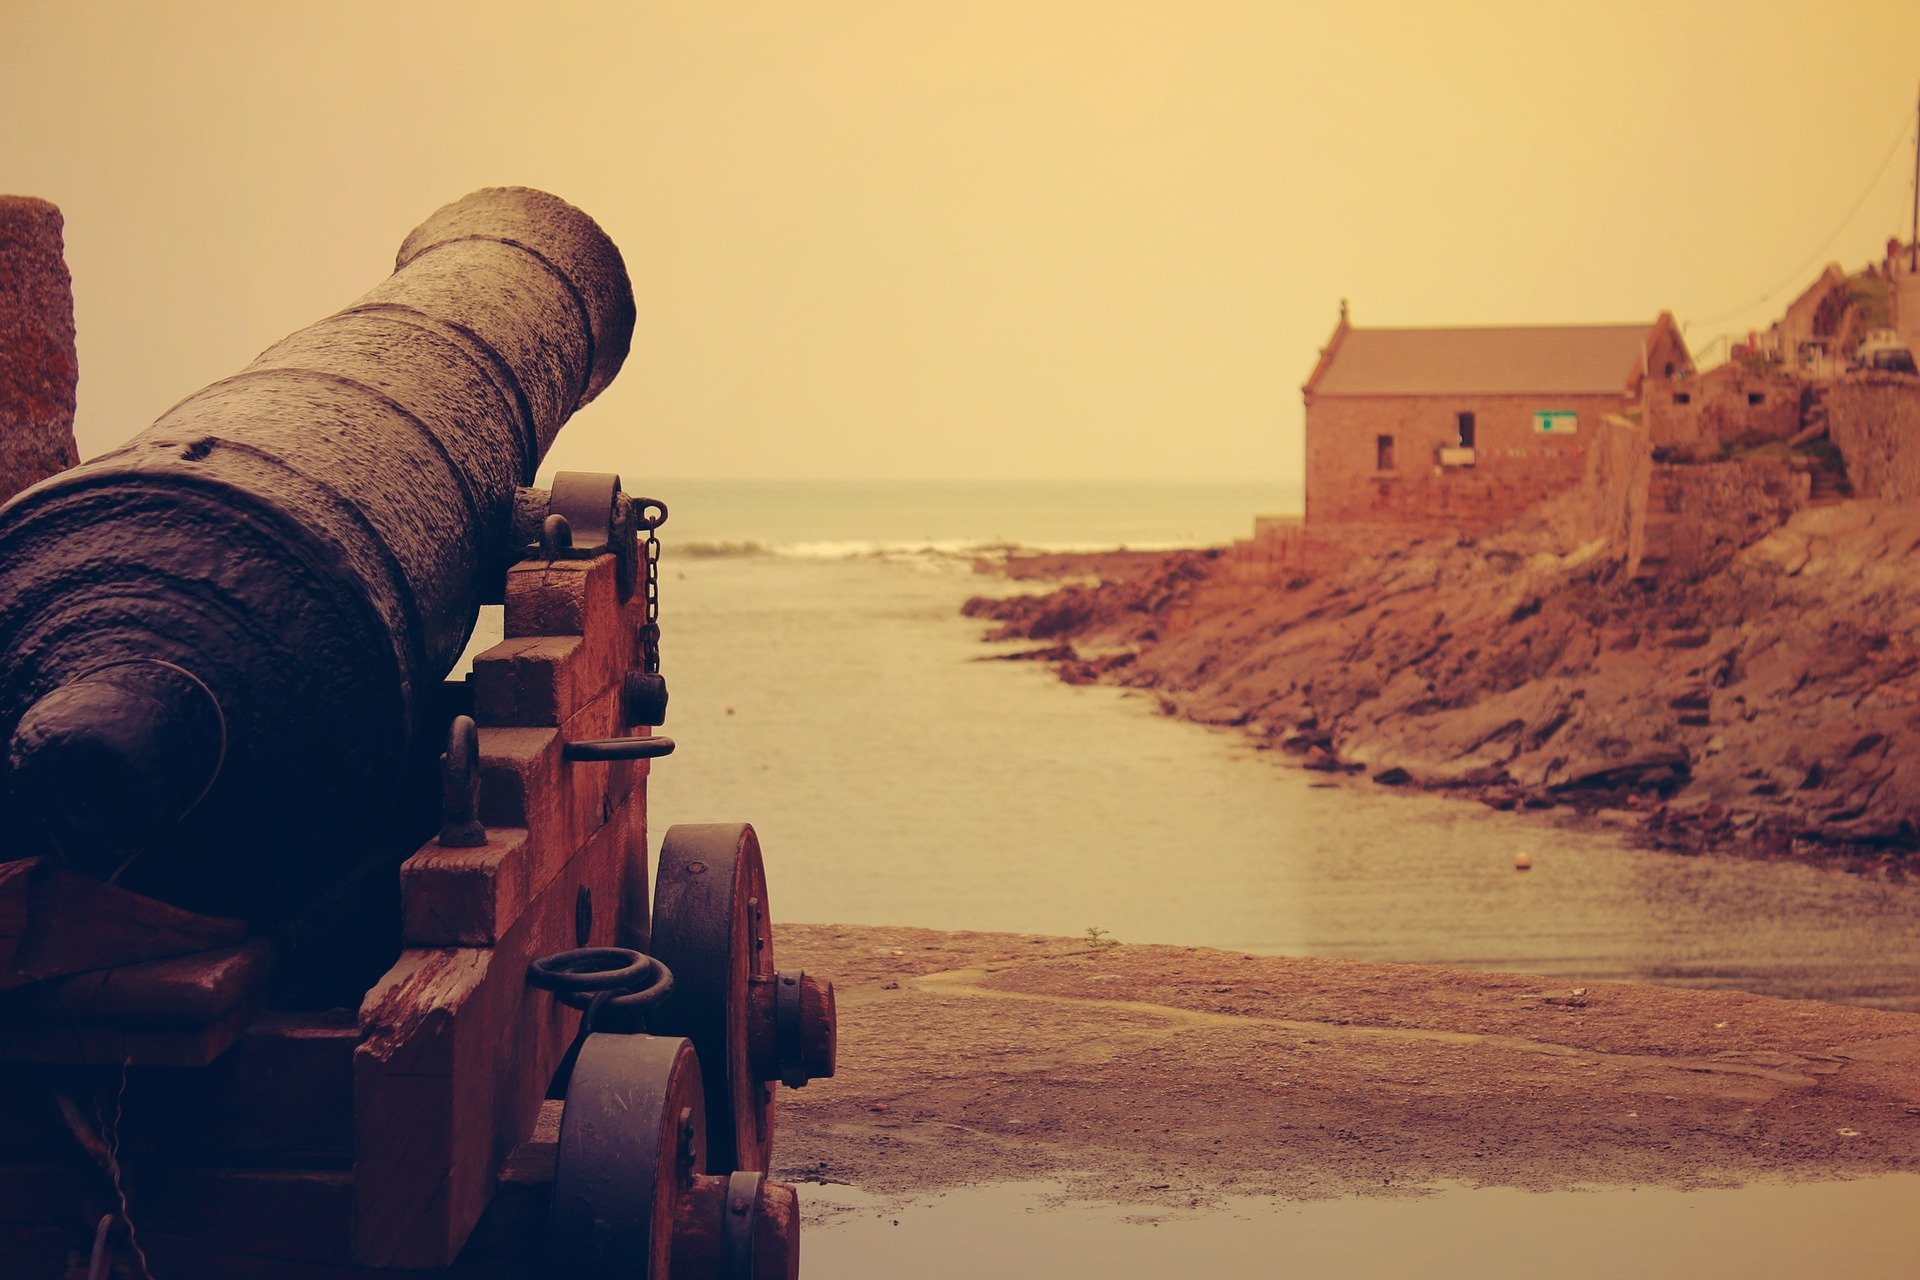 A cannon facing the seashore with a house in the distance | Photo: Pixabay/Free-Photos